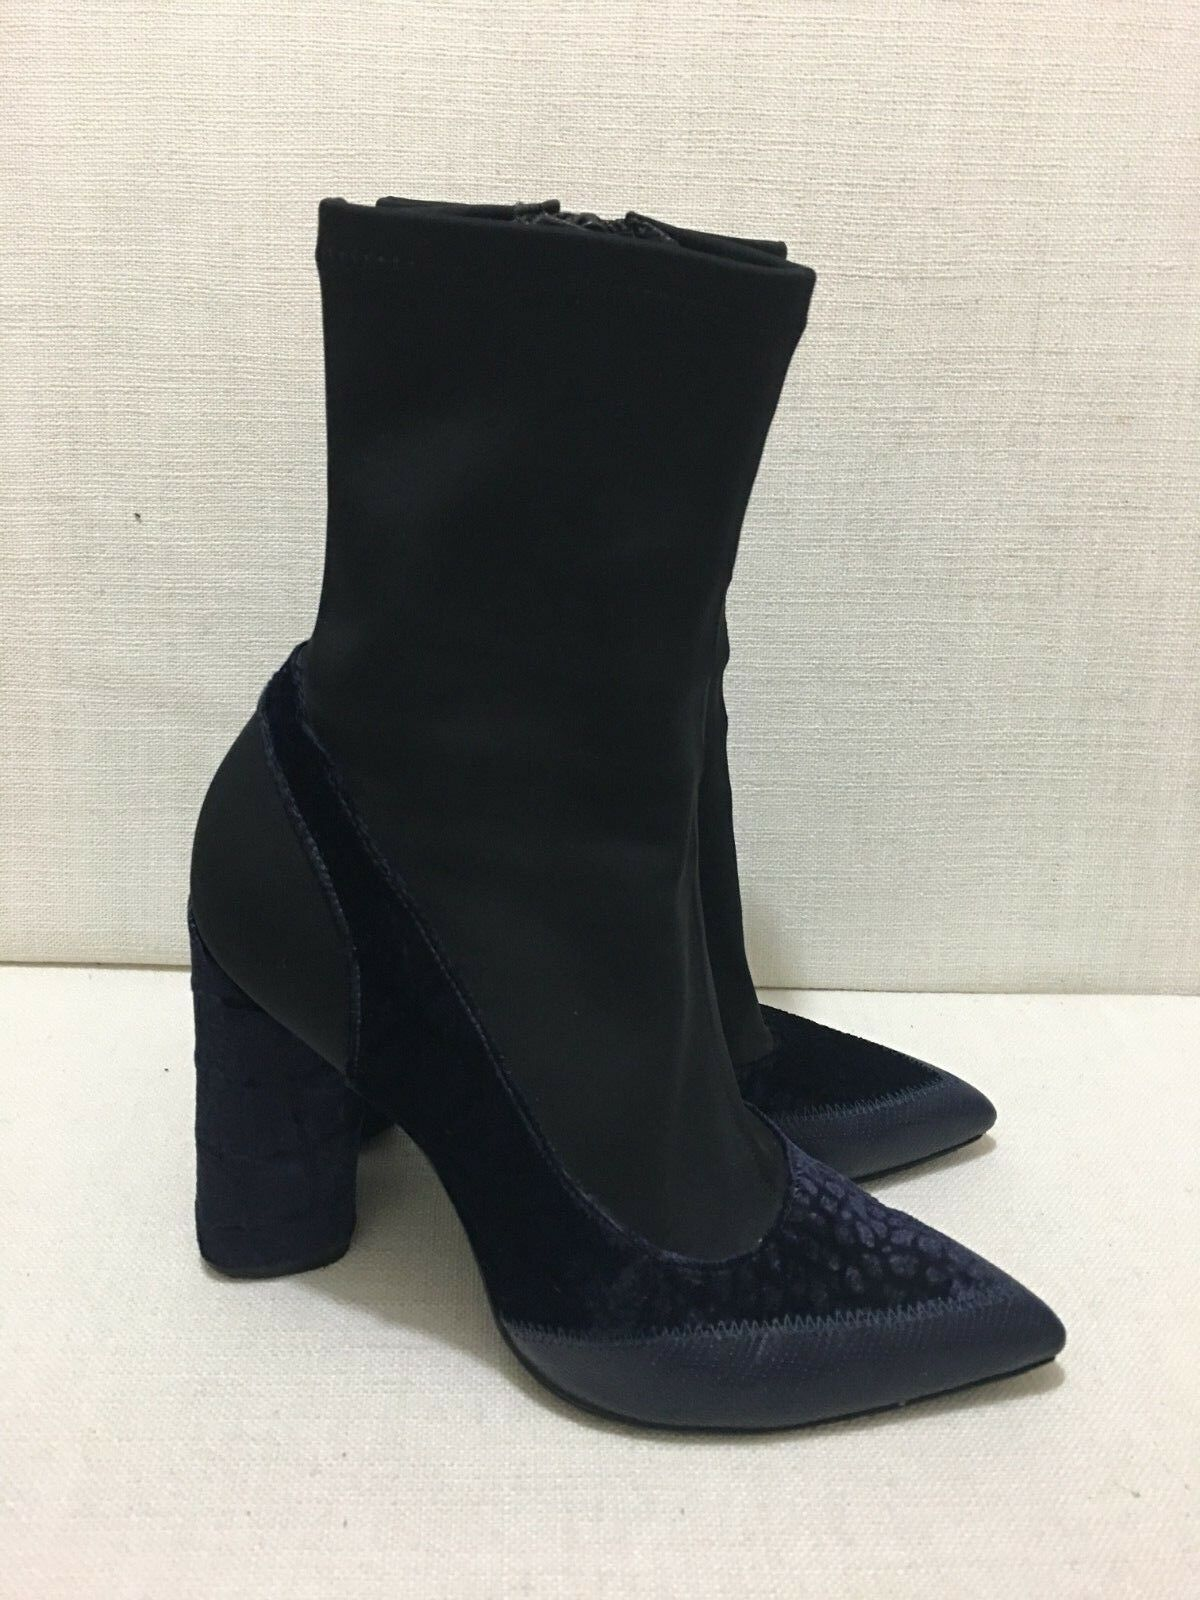 CAMILLA AND MARC Zoey Stretch Black Neoprene & bluee Crocodile Embossed Boots